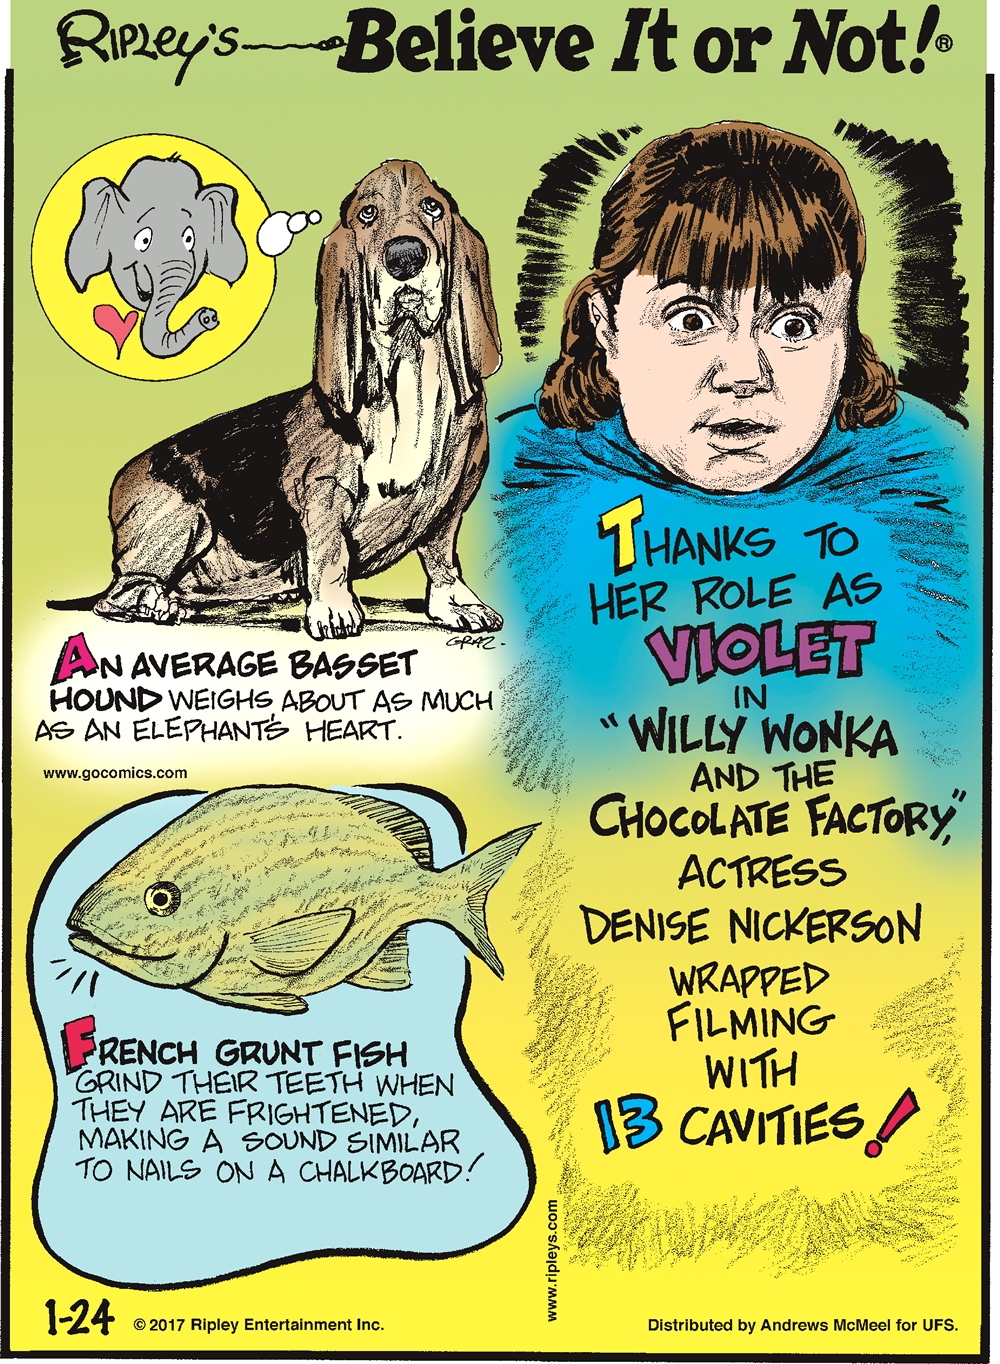 "An average basset hound weighs about as much as an elephant's heart.-------------------- French grunt fish grind their teeth when they are frightened, making a sound similar to nails on a chalkboard!--------------------- Thanks to her role as Violet in ""Willy Wonka and the Chocolate Factory,"" actress Denise Nickerson wrapped filming with 13 cavities!"